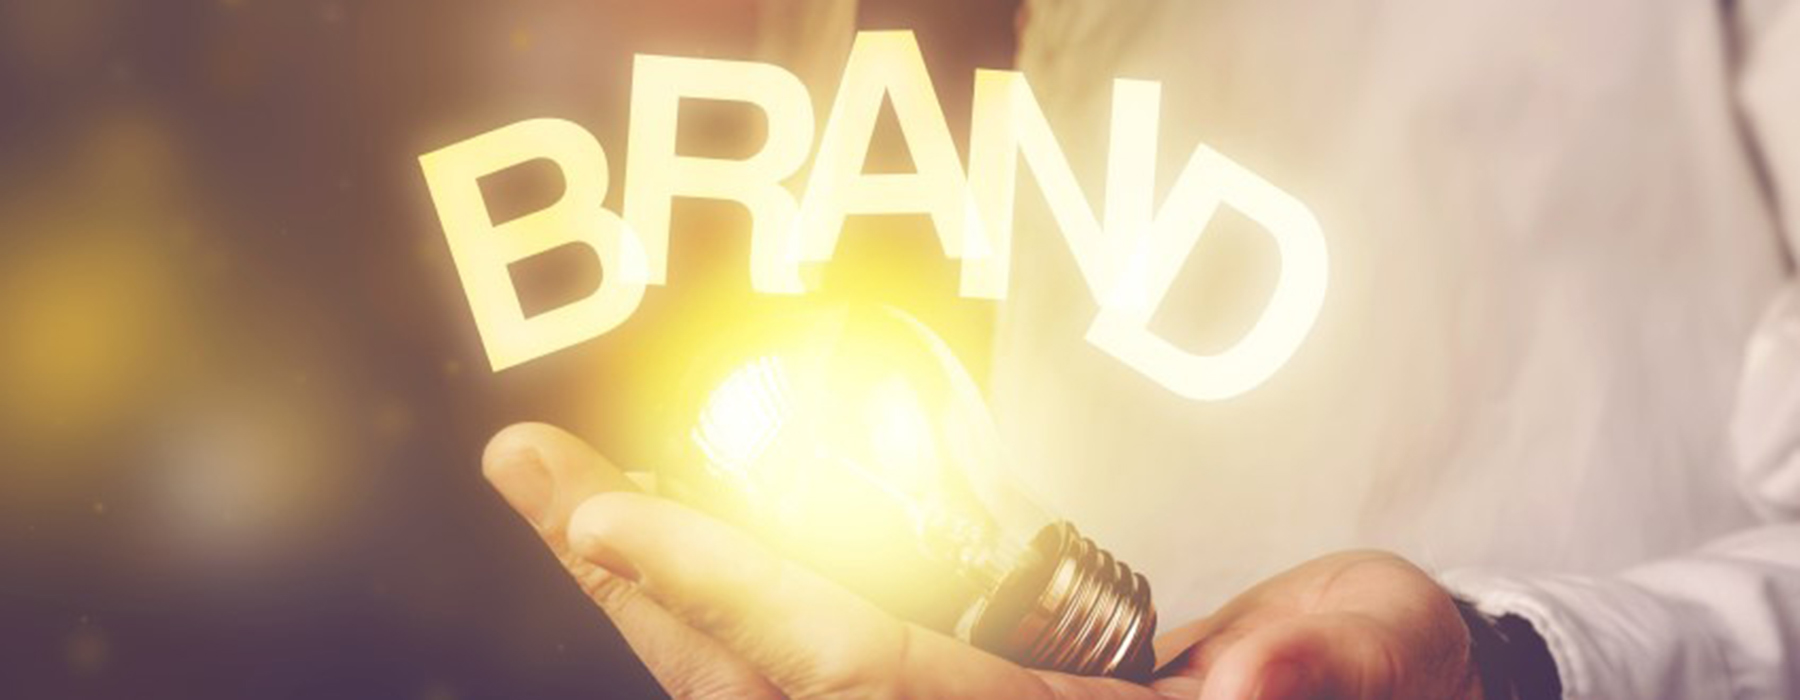 c392f9a9a The Importance of Branded Products in Marketing | Digital Marketing Magazine